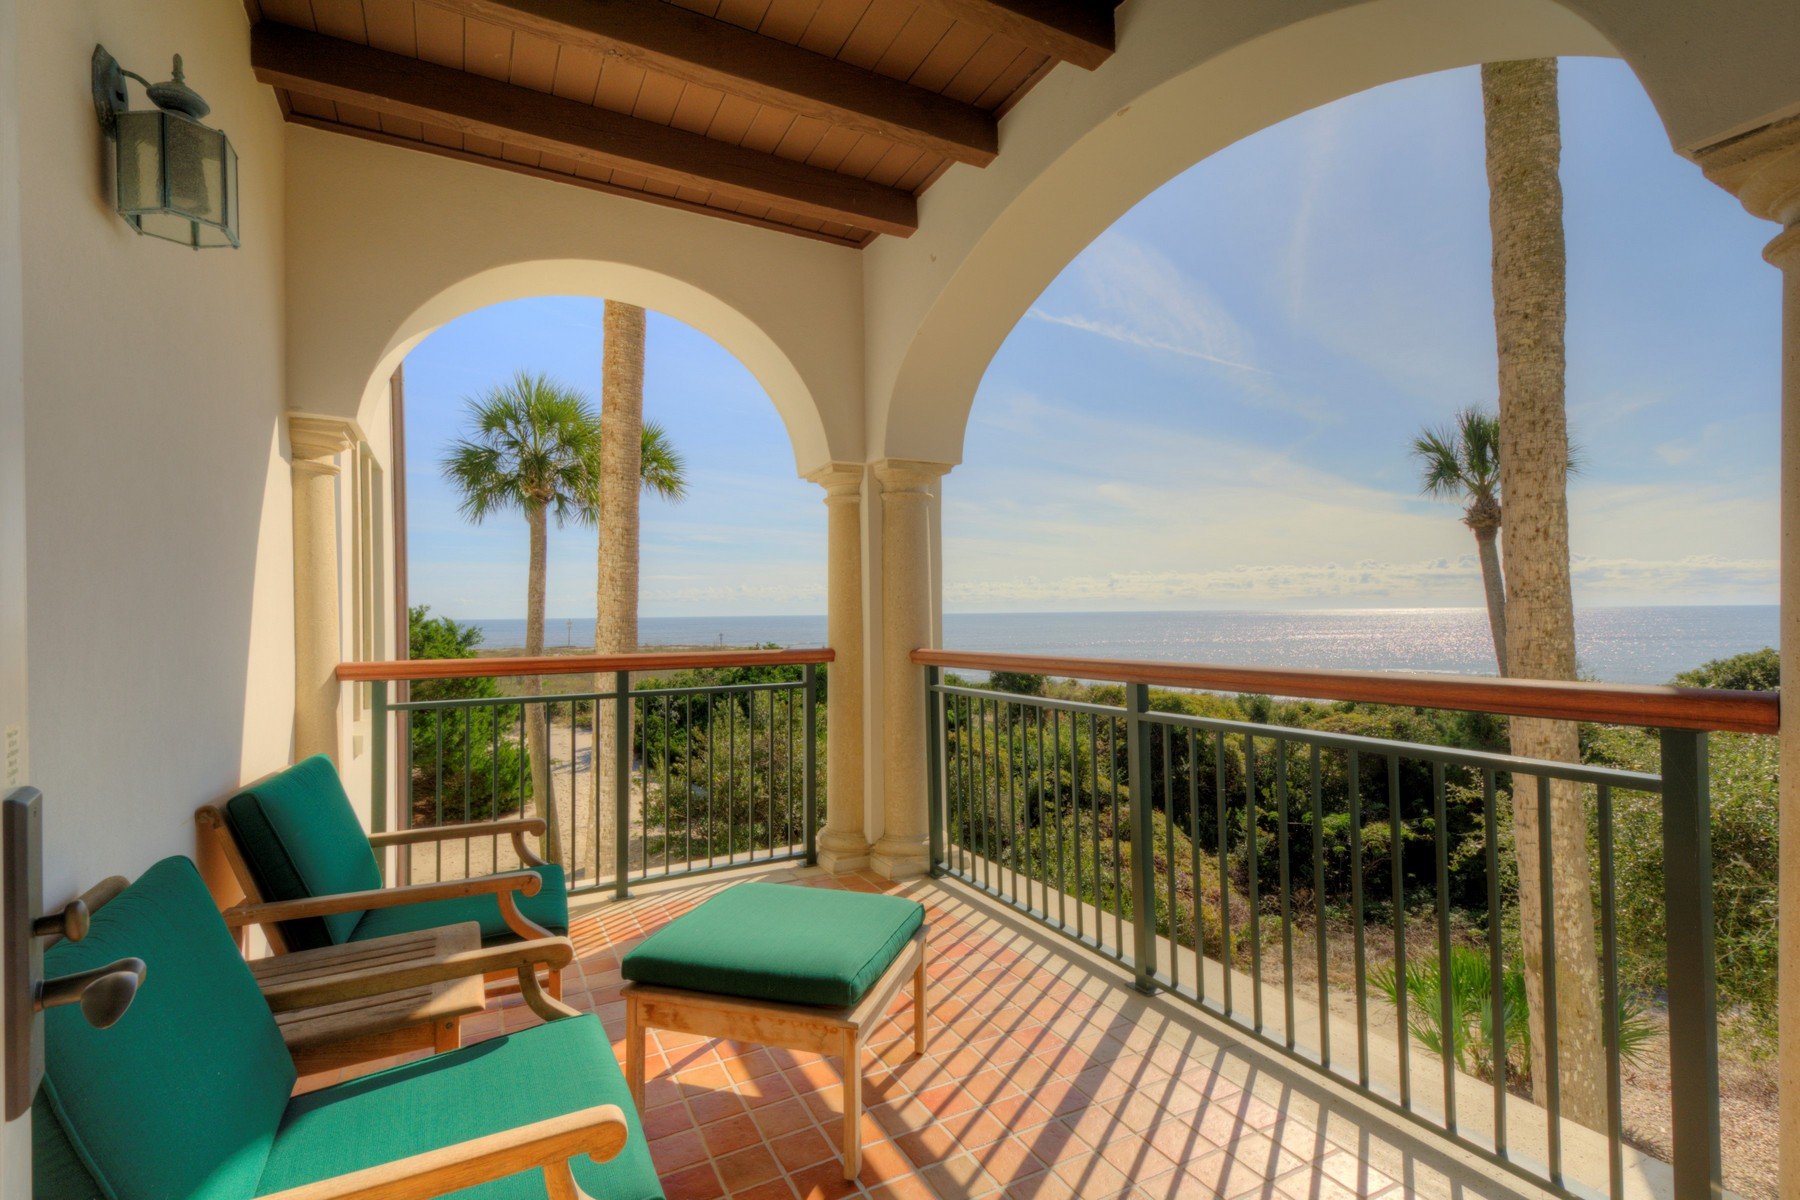 Condominium for Sale at #18 COR 10 Dune Avenue #18 Sea Island, Georgia, 31561 United States